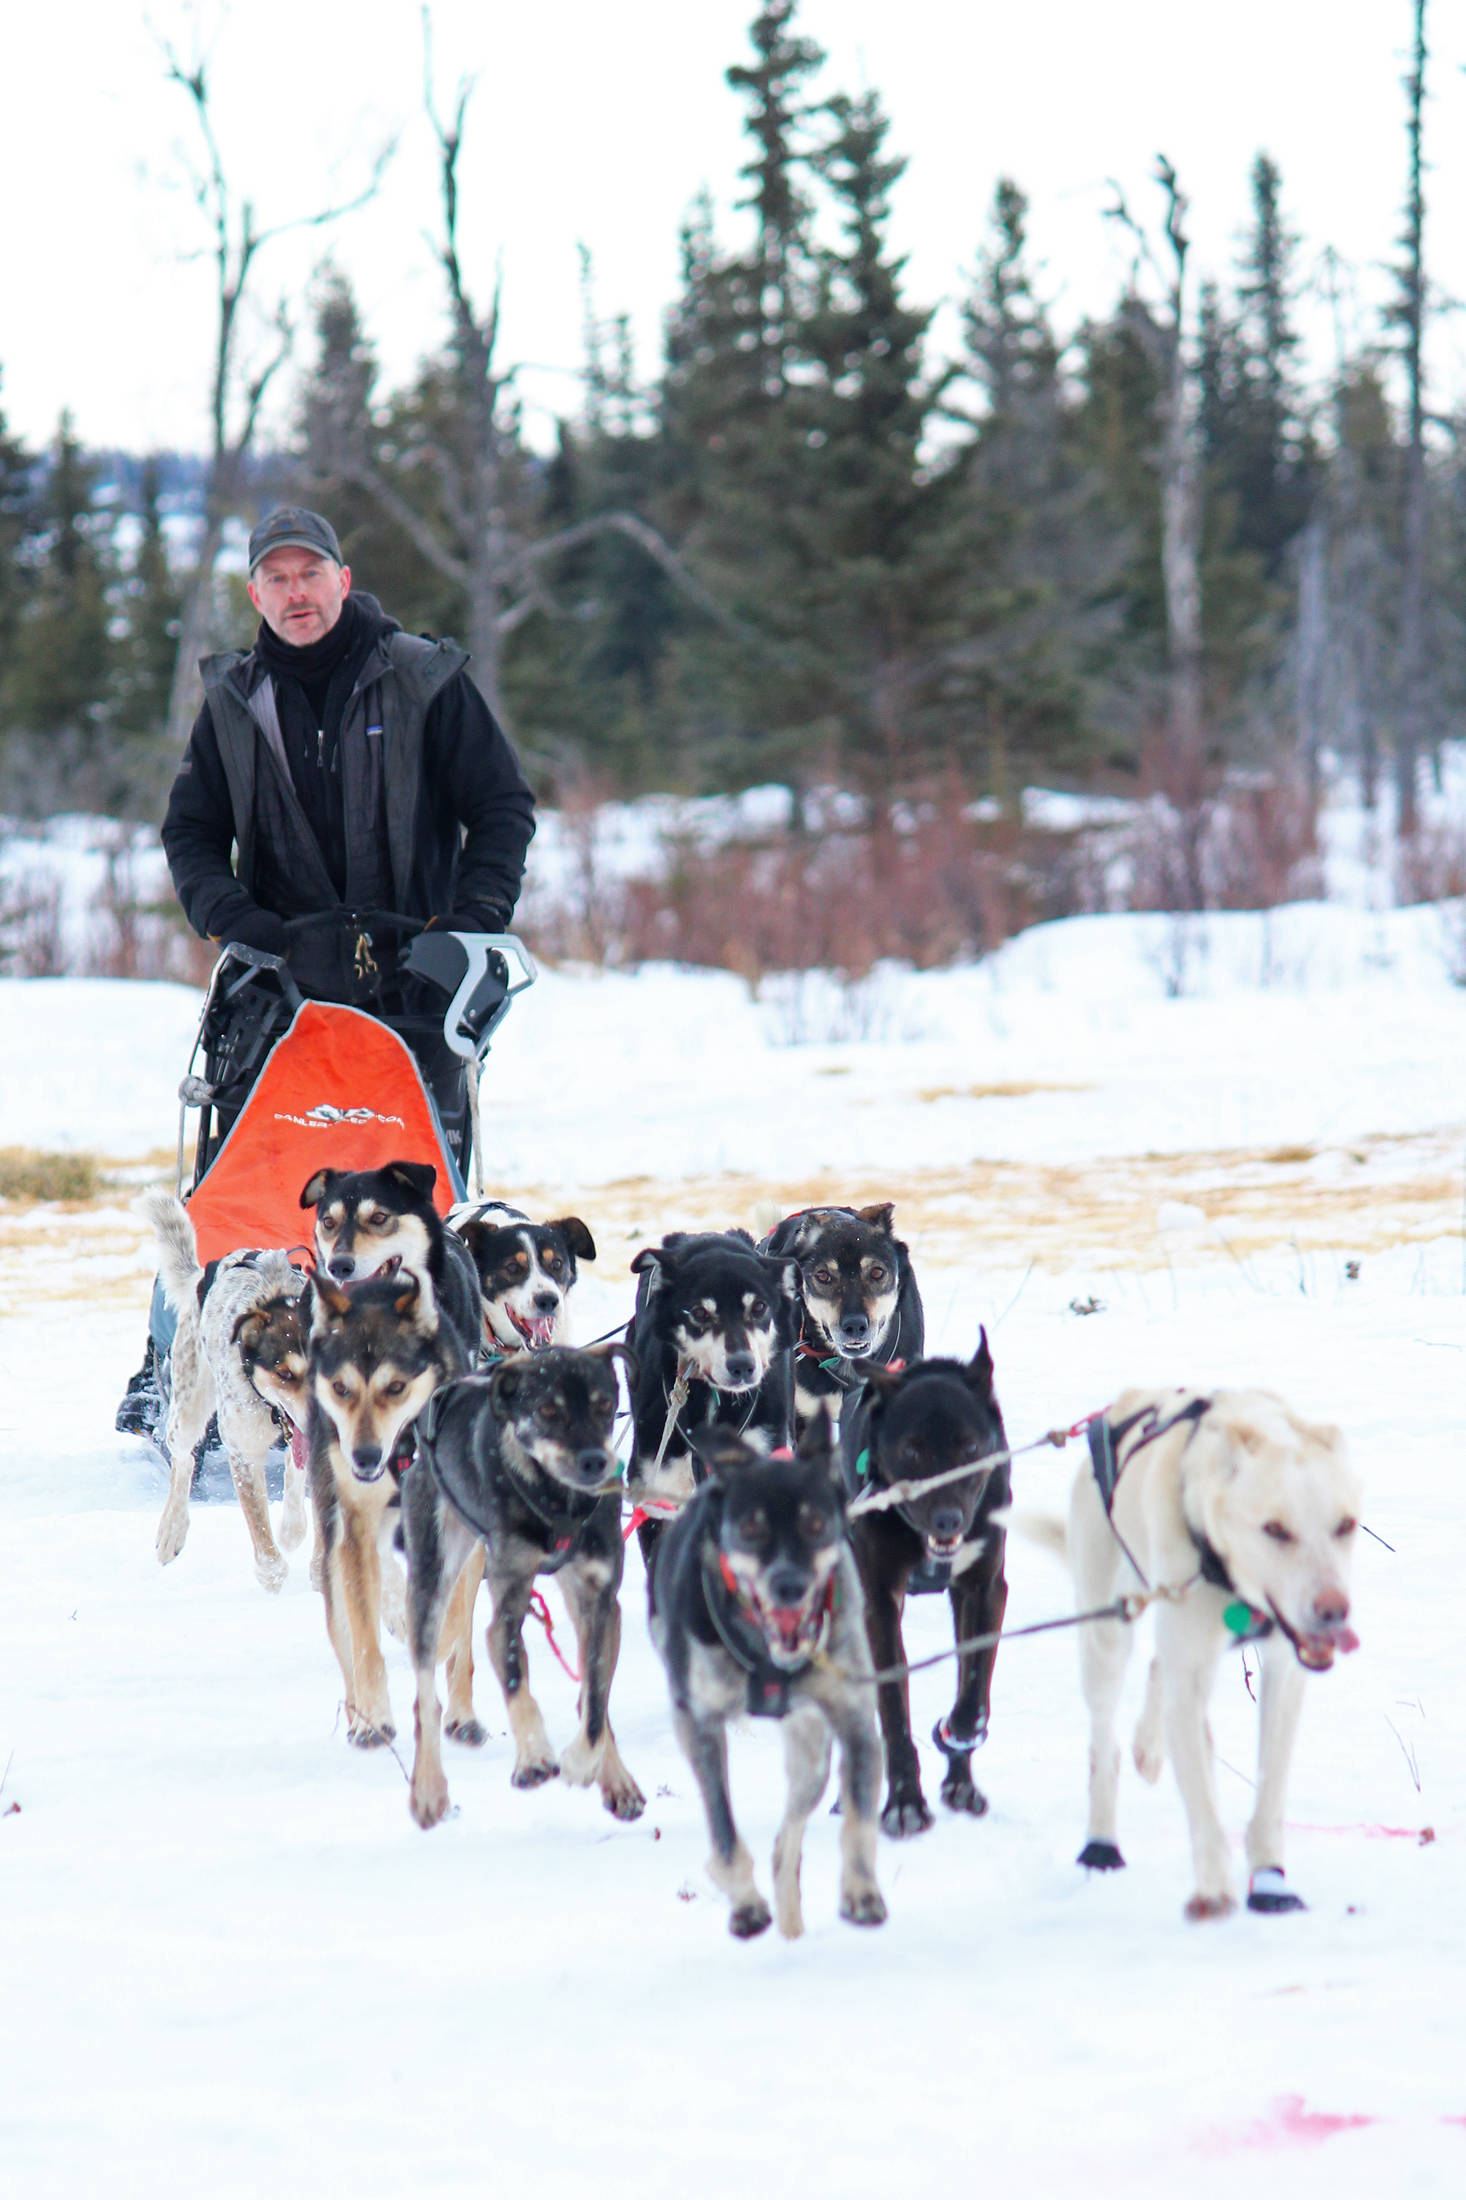 Musher Dave Turner pulls up to the finish line of the Tustumena 200 Sled Dog Race on Sunday, Jan. 27, 2019 at Freddie's Roadhouse near Ninilchik, Alaska. Turner took first place in the race that takes dog teams throughout the Caribou Hills on the lower Kenai Peninsula. (Photo by Megan Pacer/Homer News)